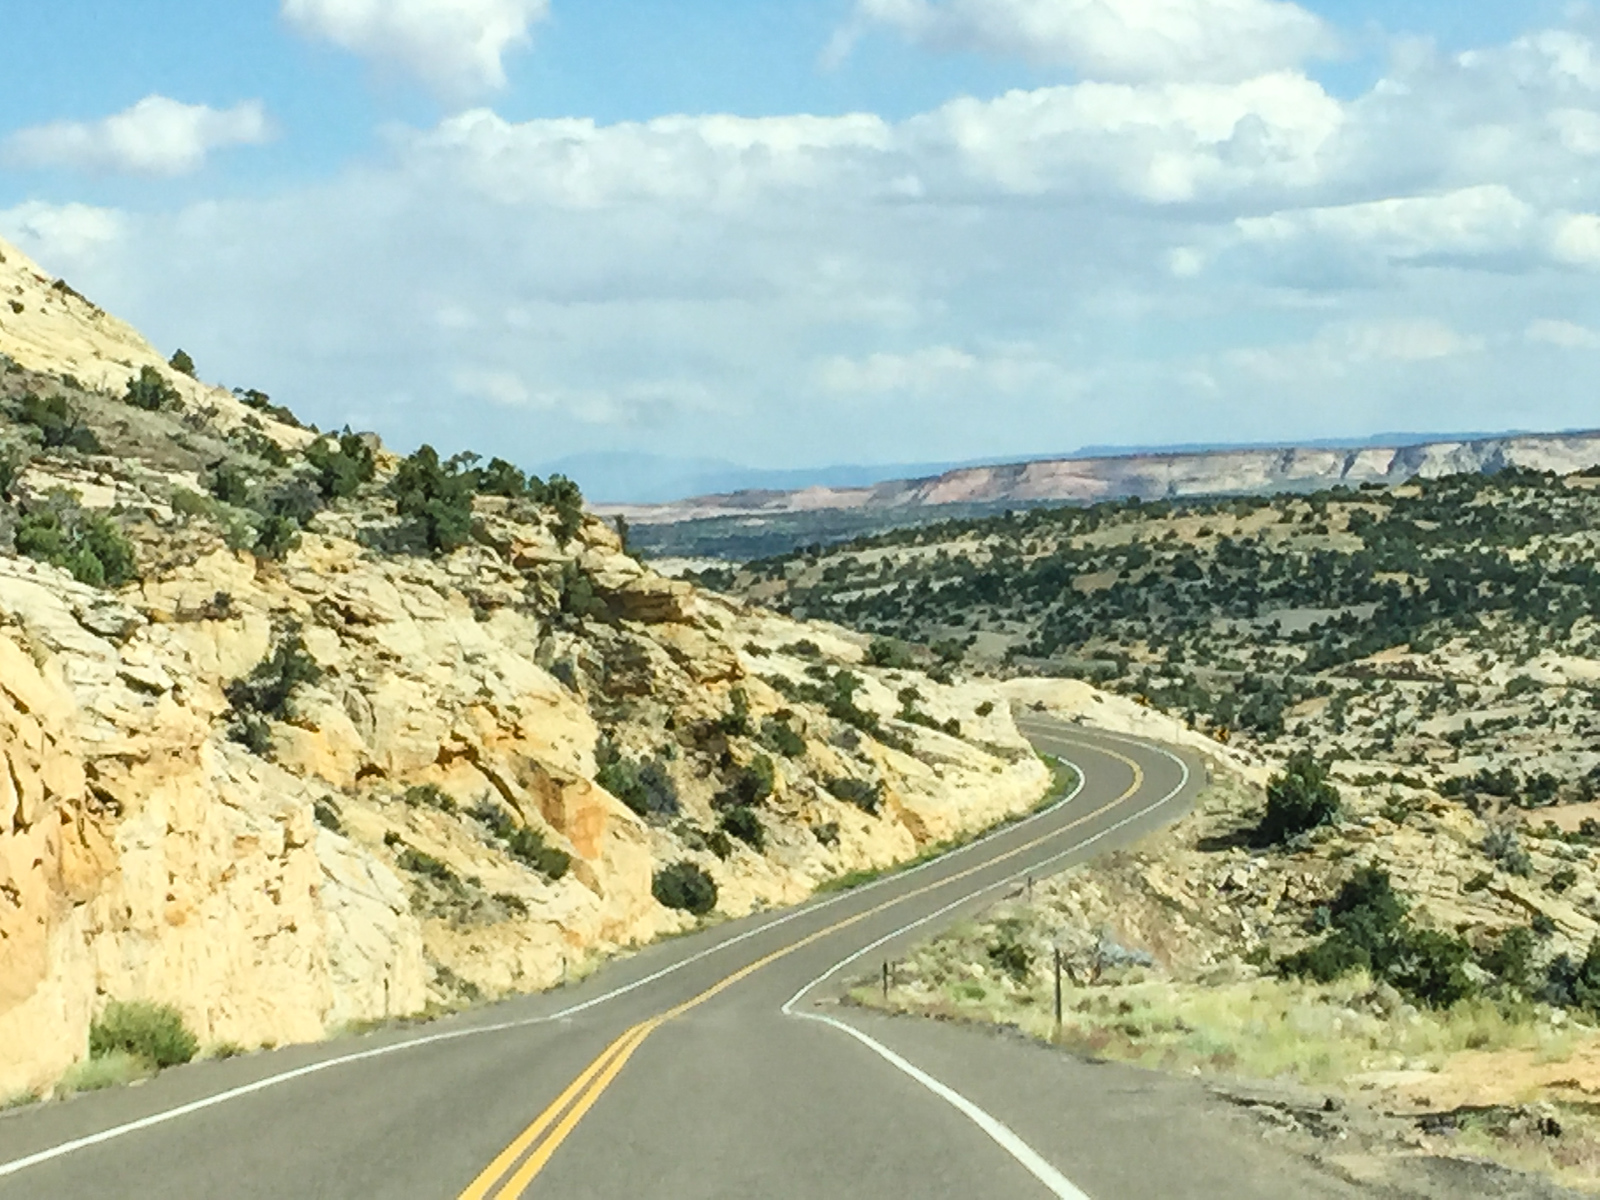 And the scenery changes yet again between Boulder and Escalante when you drive Highway 12 Scenic Byway in southern Utah.